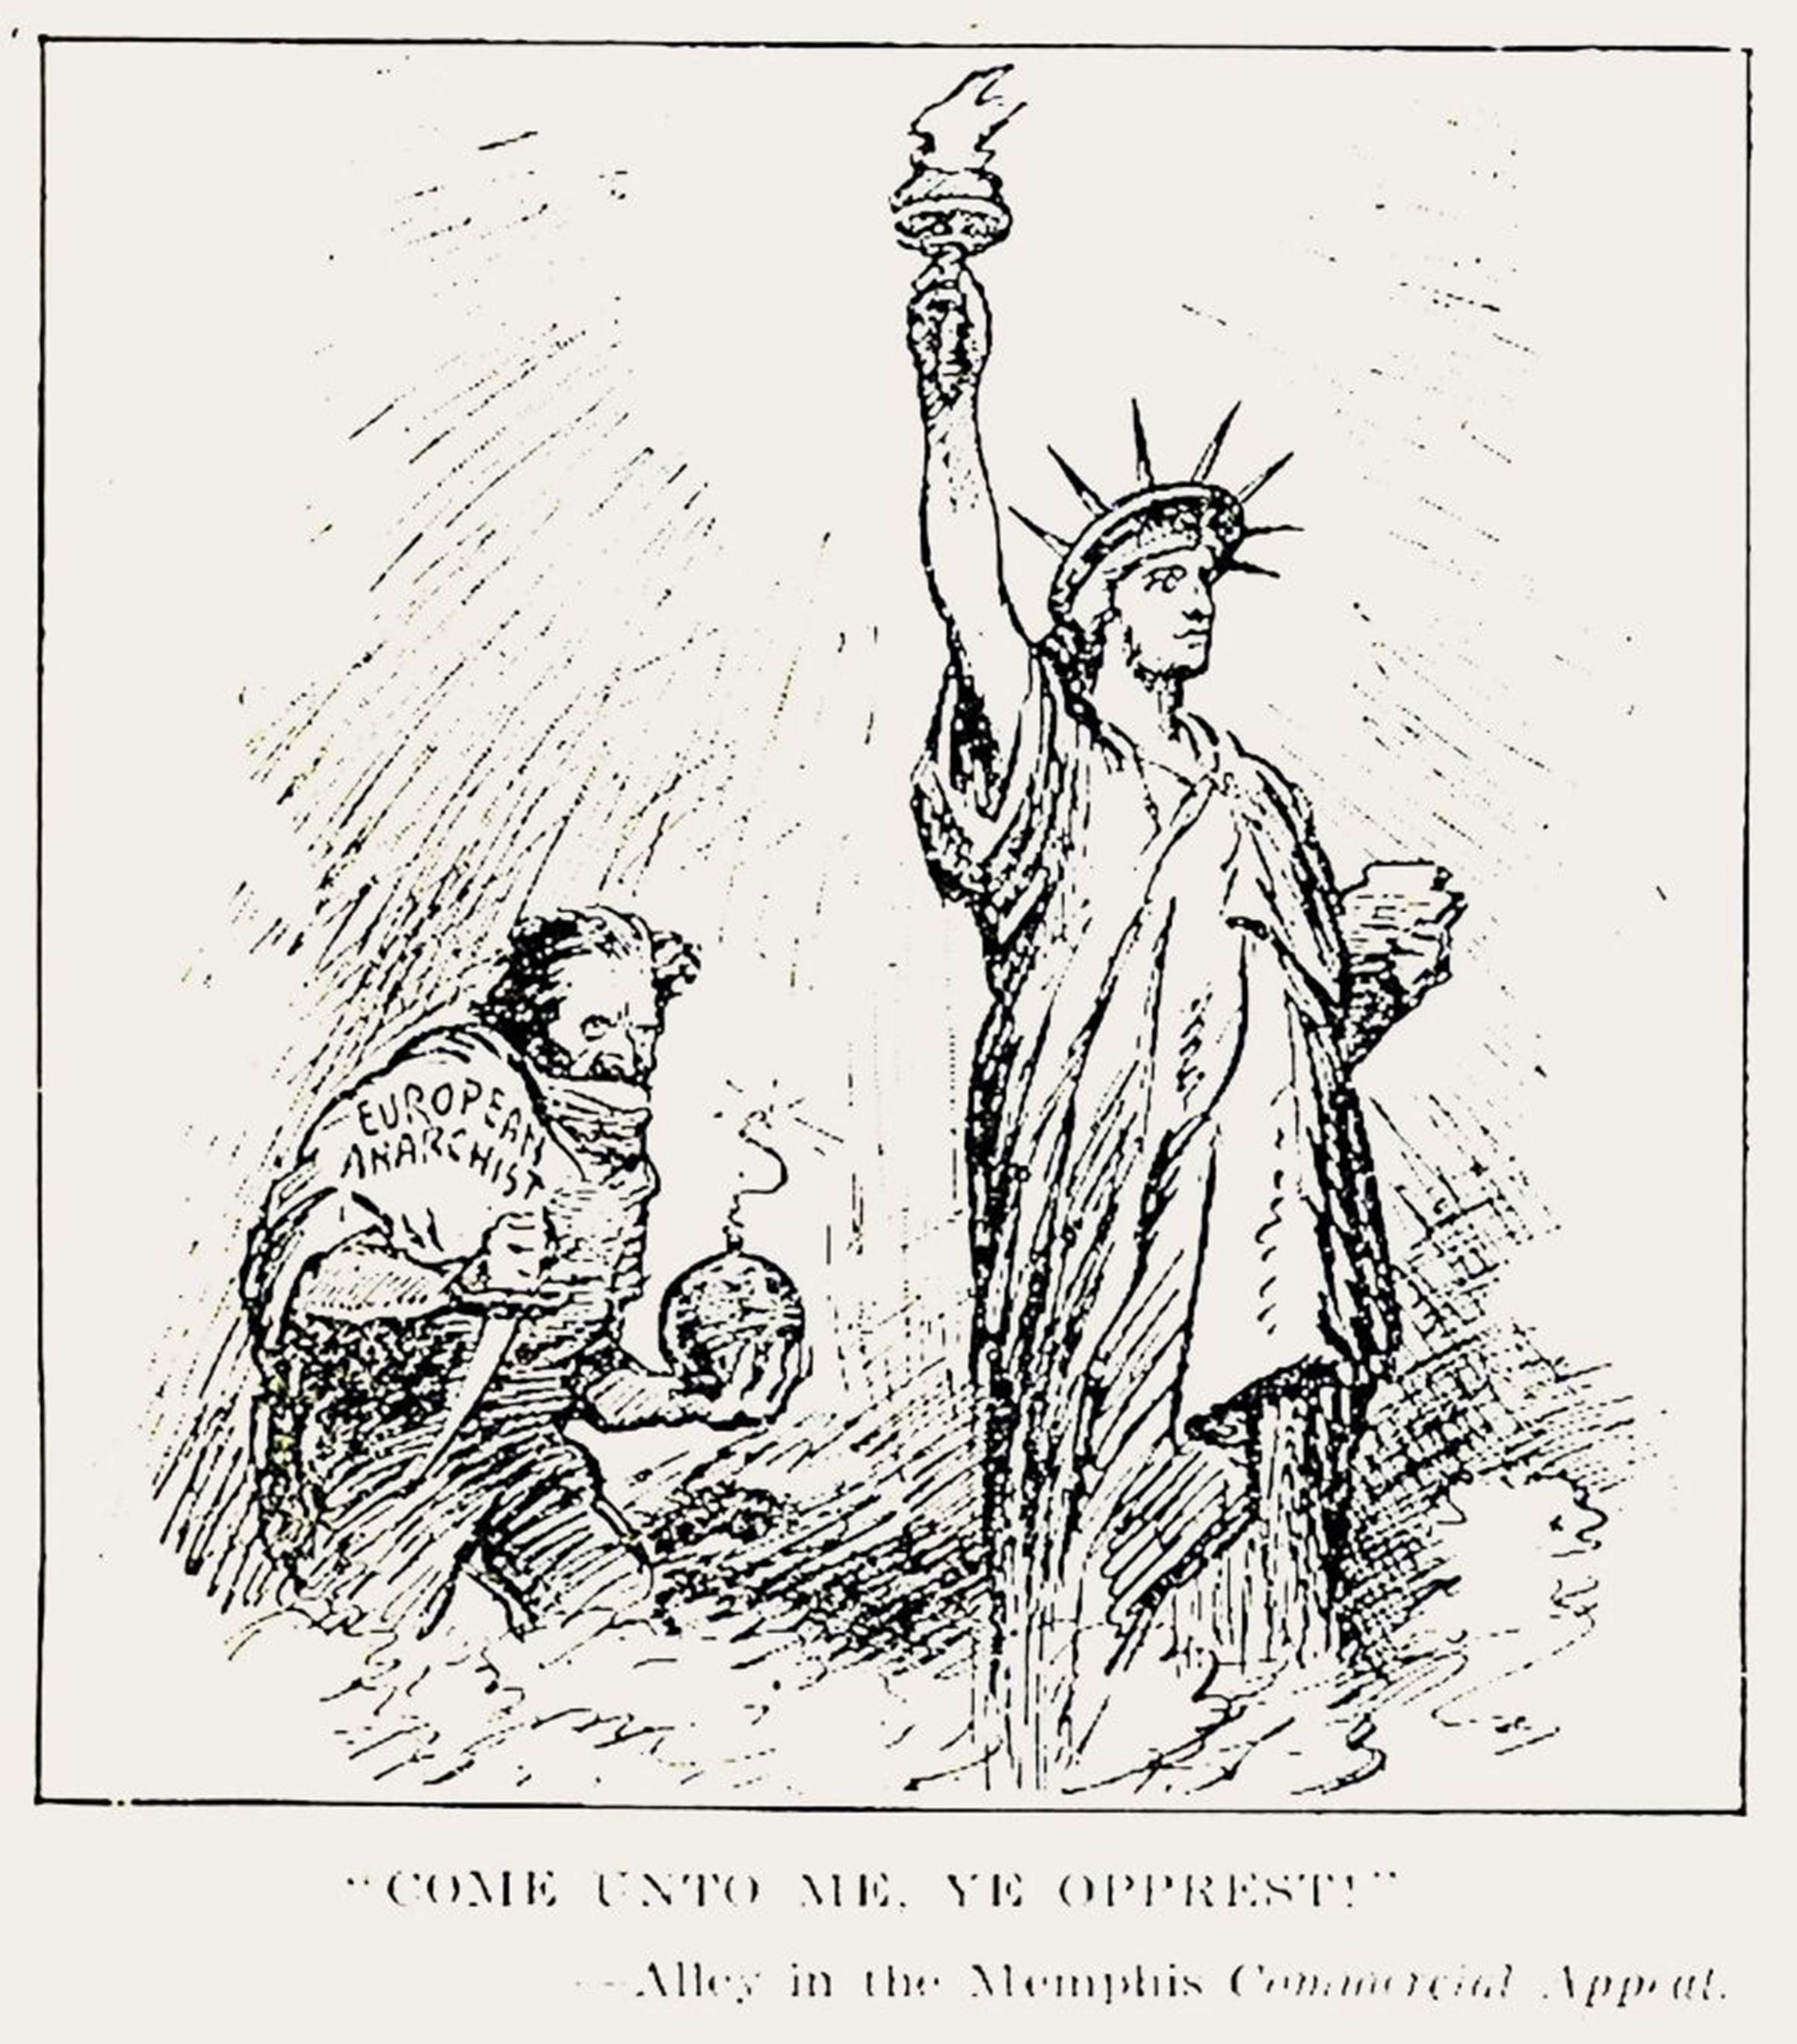 An anti-Bolshevik political cartoon published in the July 5, 1919, Literary Digest.